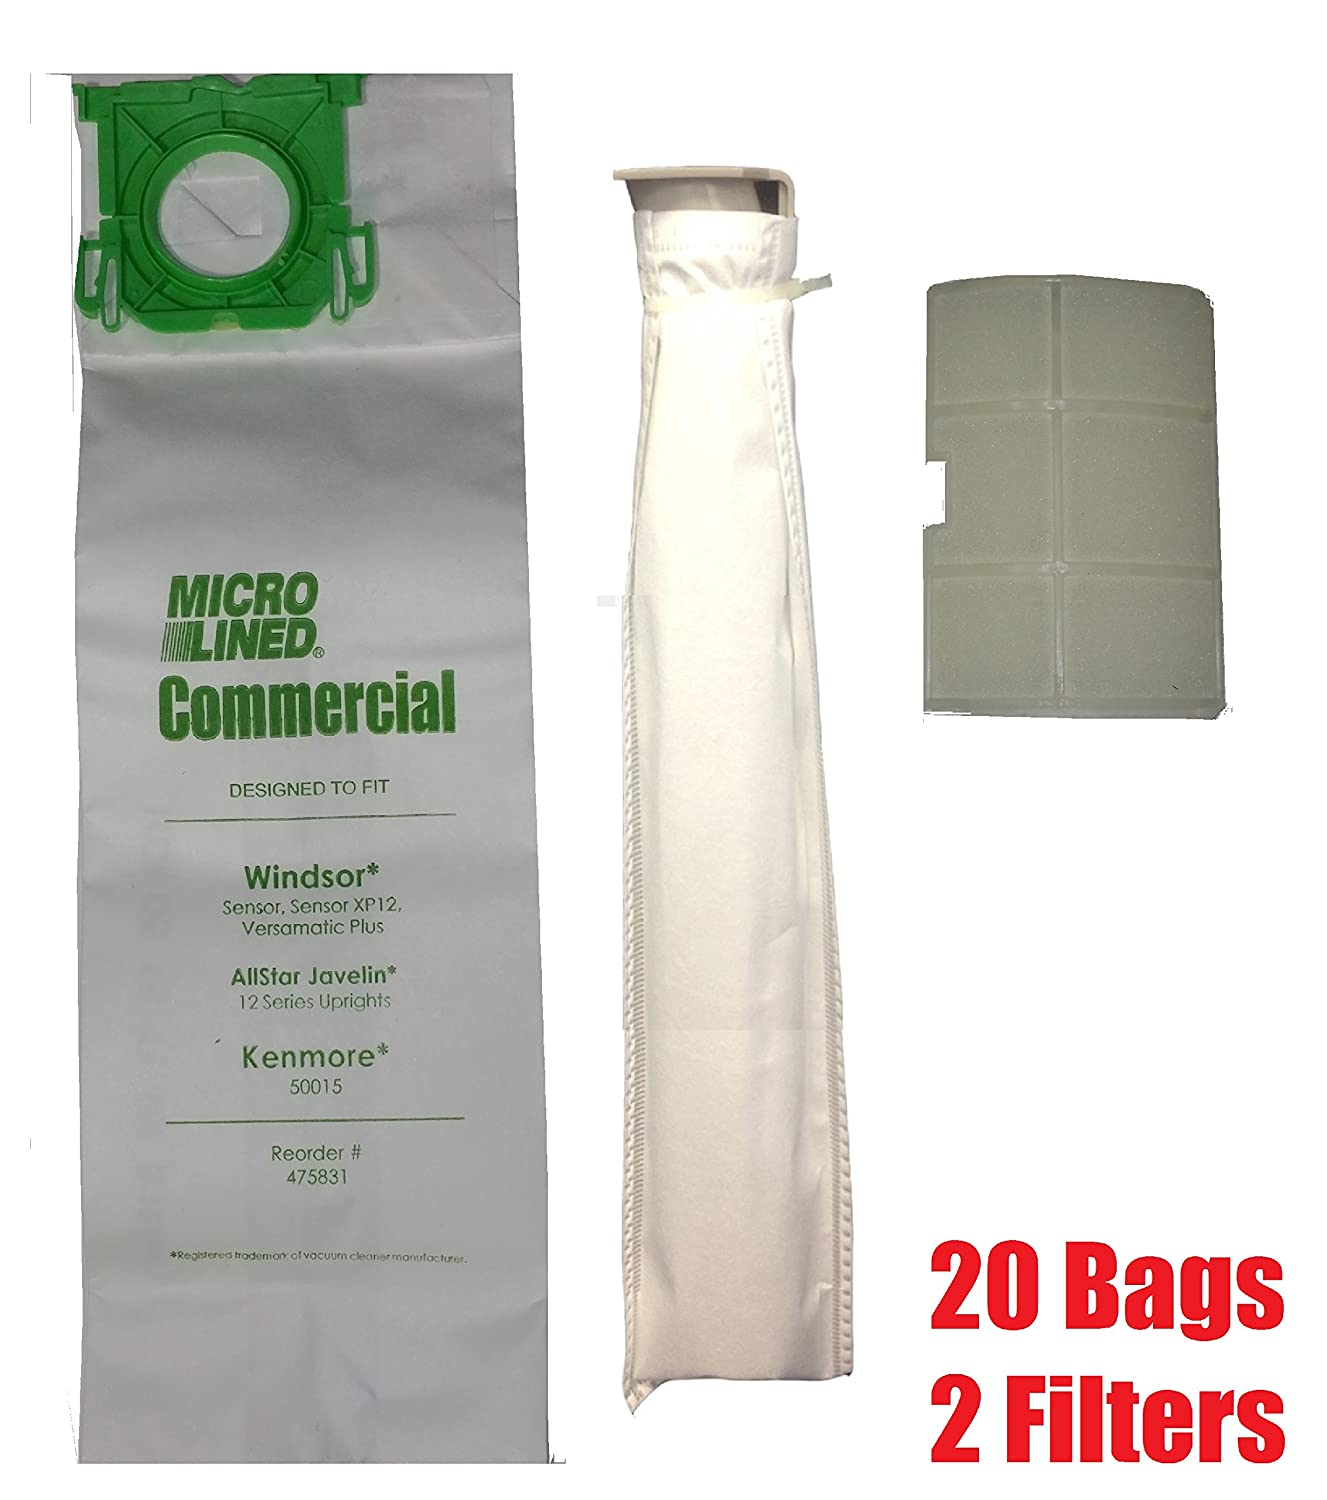 Sebo, Windsor Service Box Vacuum Bag and Filter Kit. 20 Bags + 2 Filters. Micro-Lined Fits 5828ER